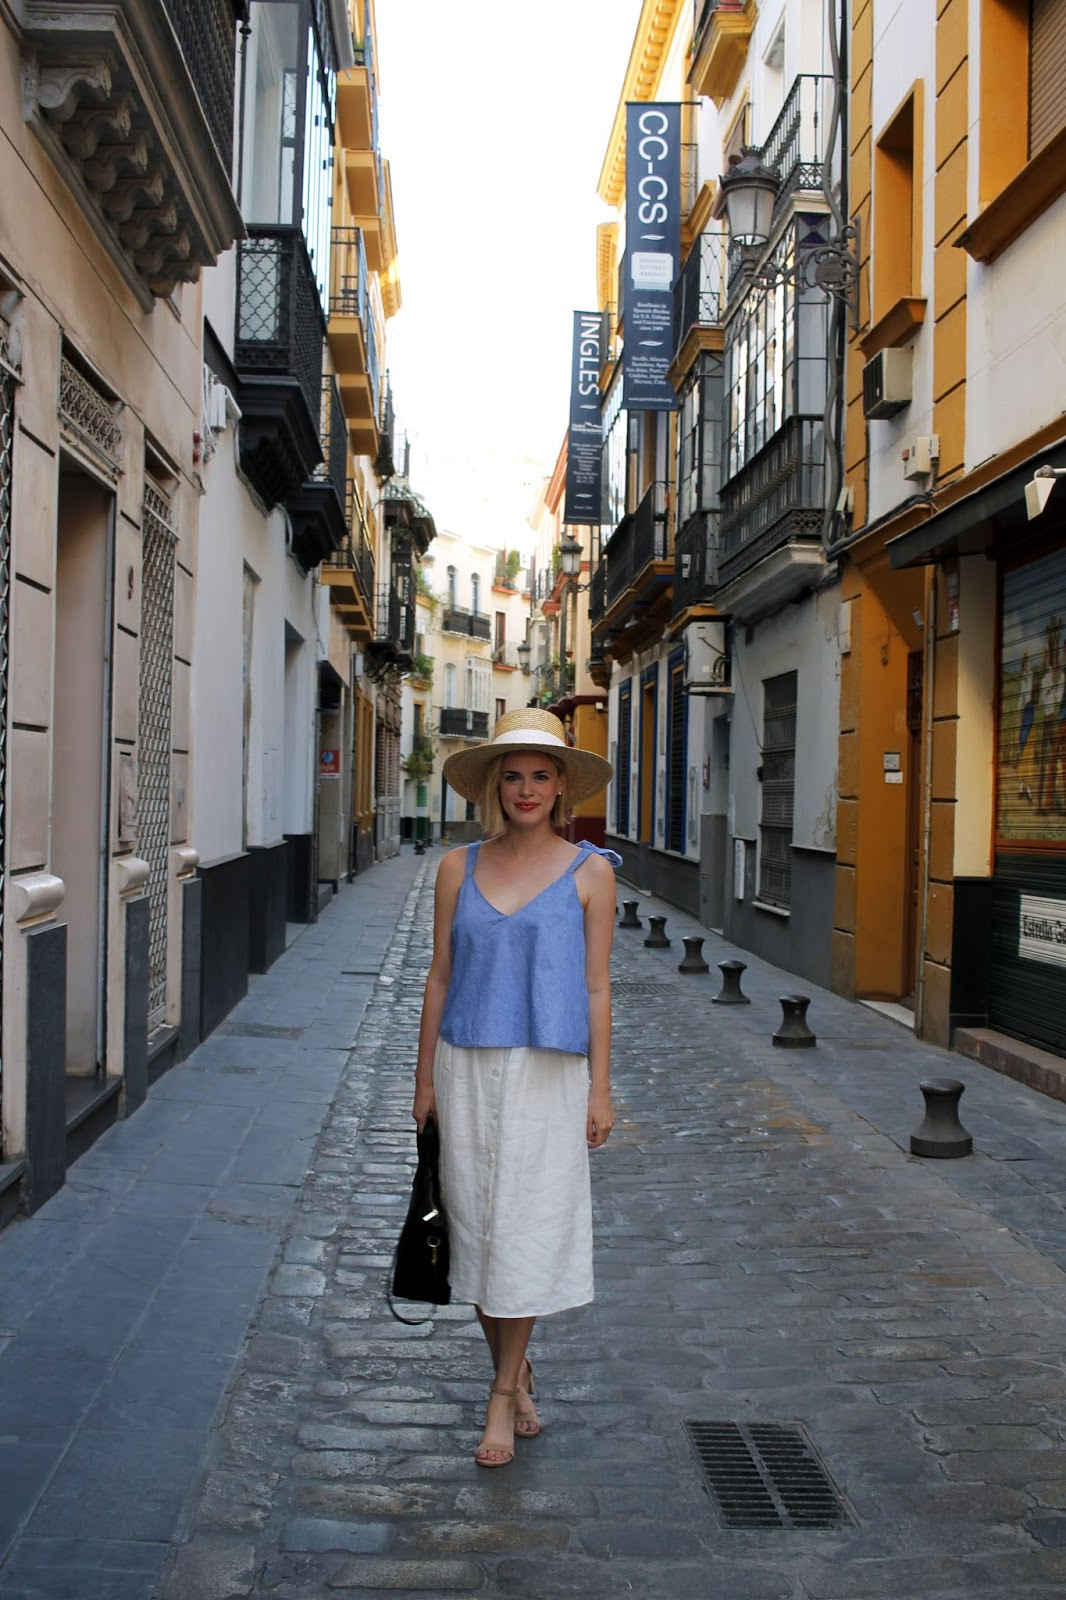 zara linen skirt in seville spain